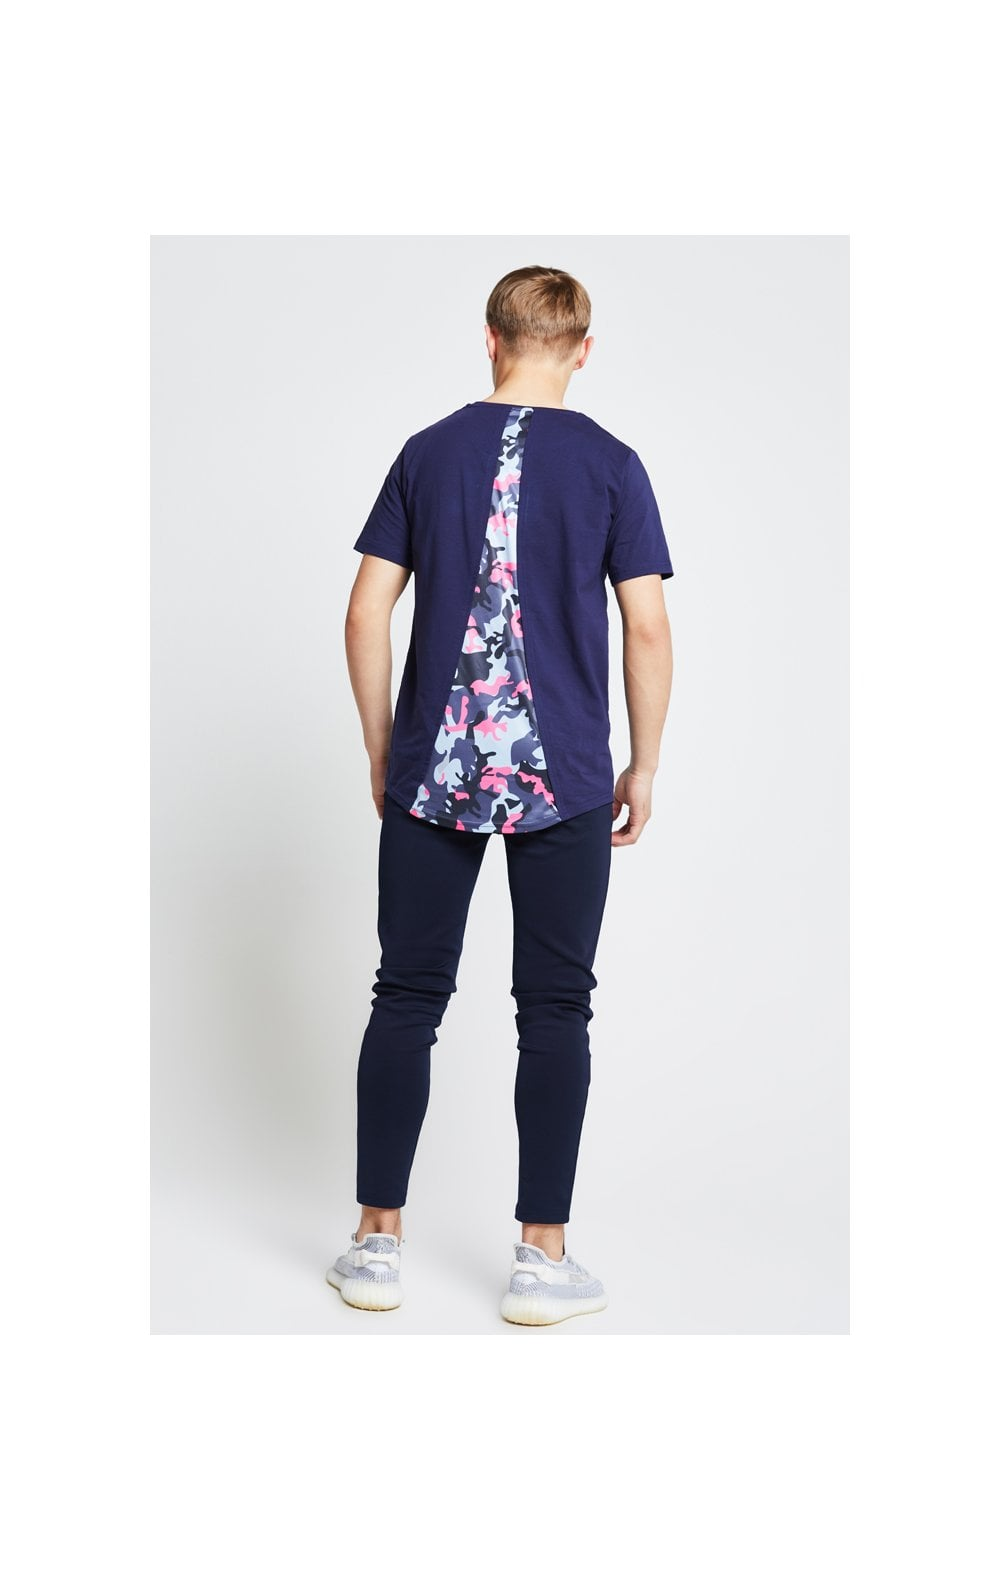 Load image into Gallery viewer, Illusive London Racer Back Tee – Navy & Neon Pink Camo (5)